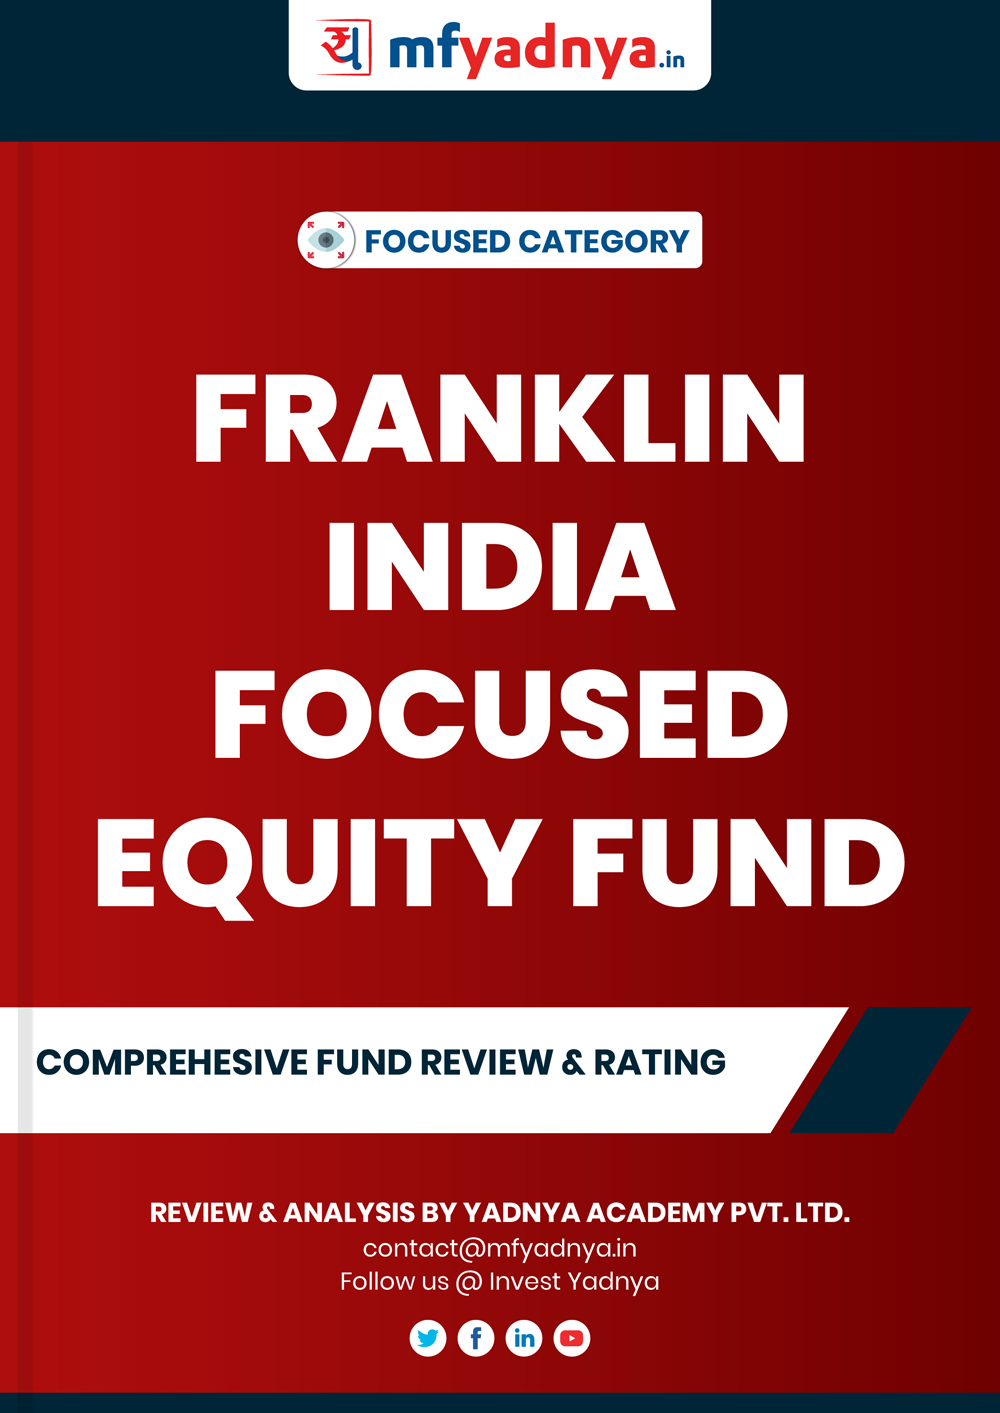 Focused Category Review - Franklin India Focused Equity Fund. Most Comprehensive and detailed MF review based on Yadnya's proprietary methodology of Green, Yellow & Red Star. Detailed Analysis & Review based on Sept 30th, 2019 data.